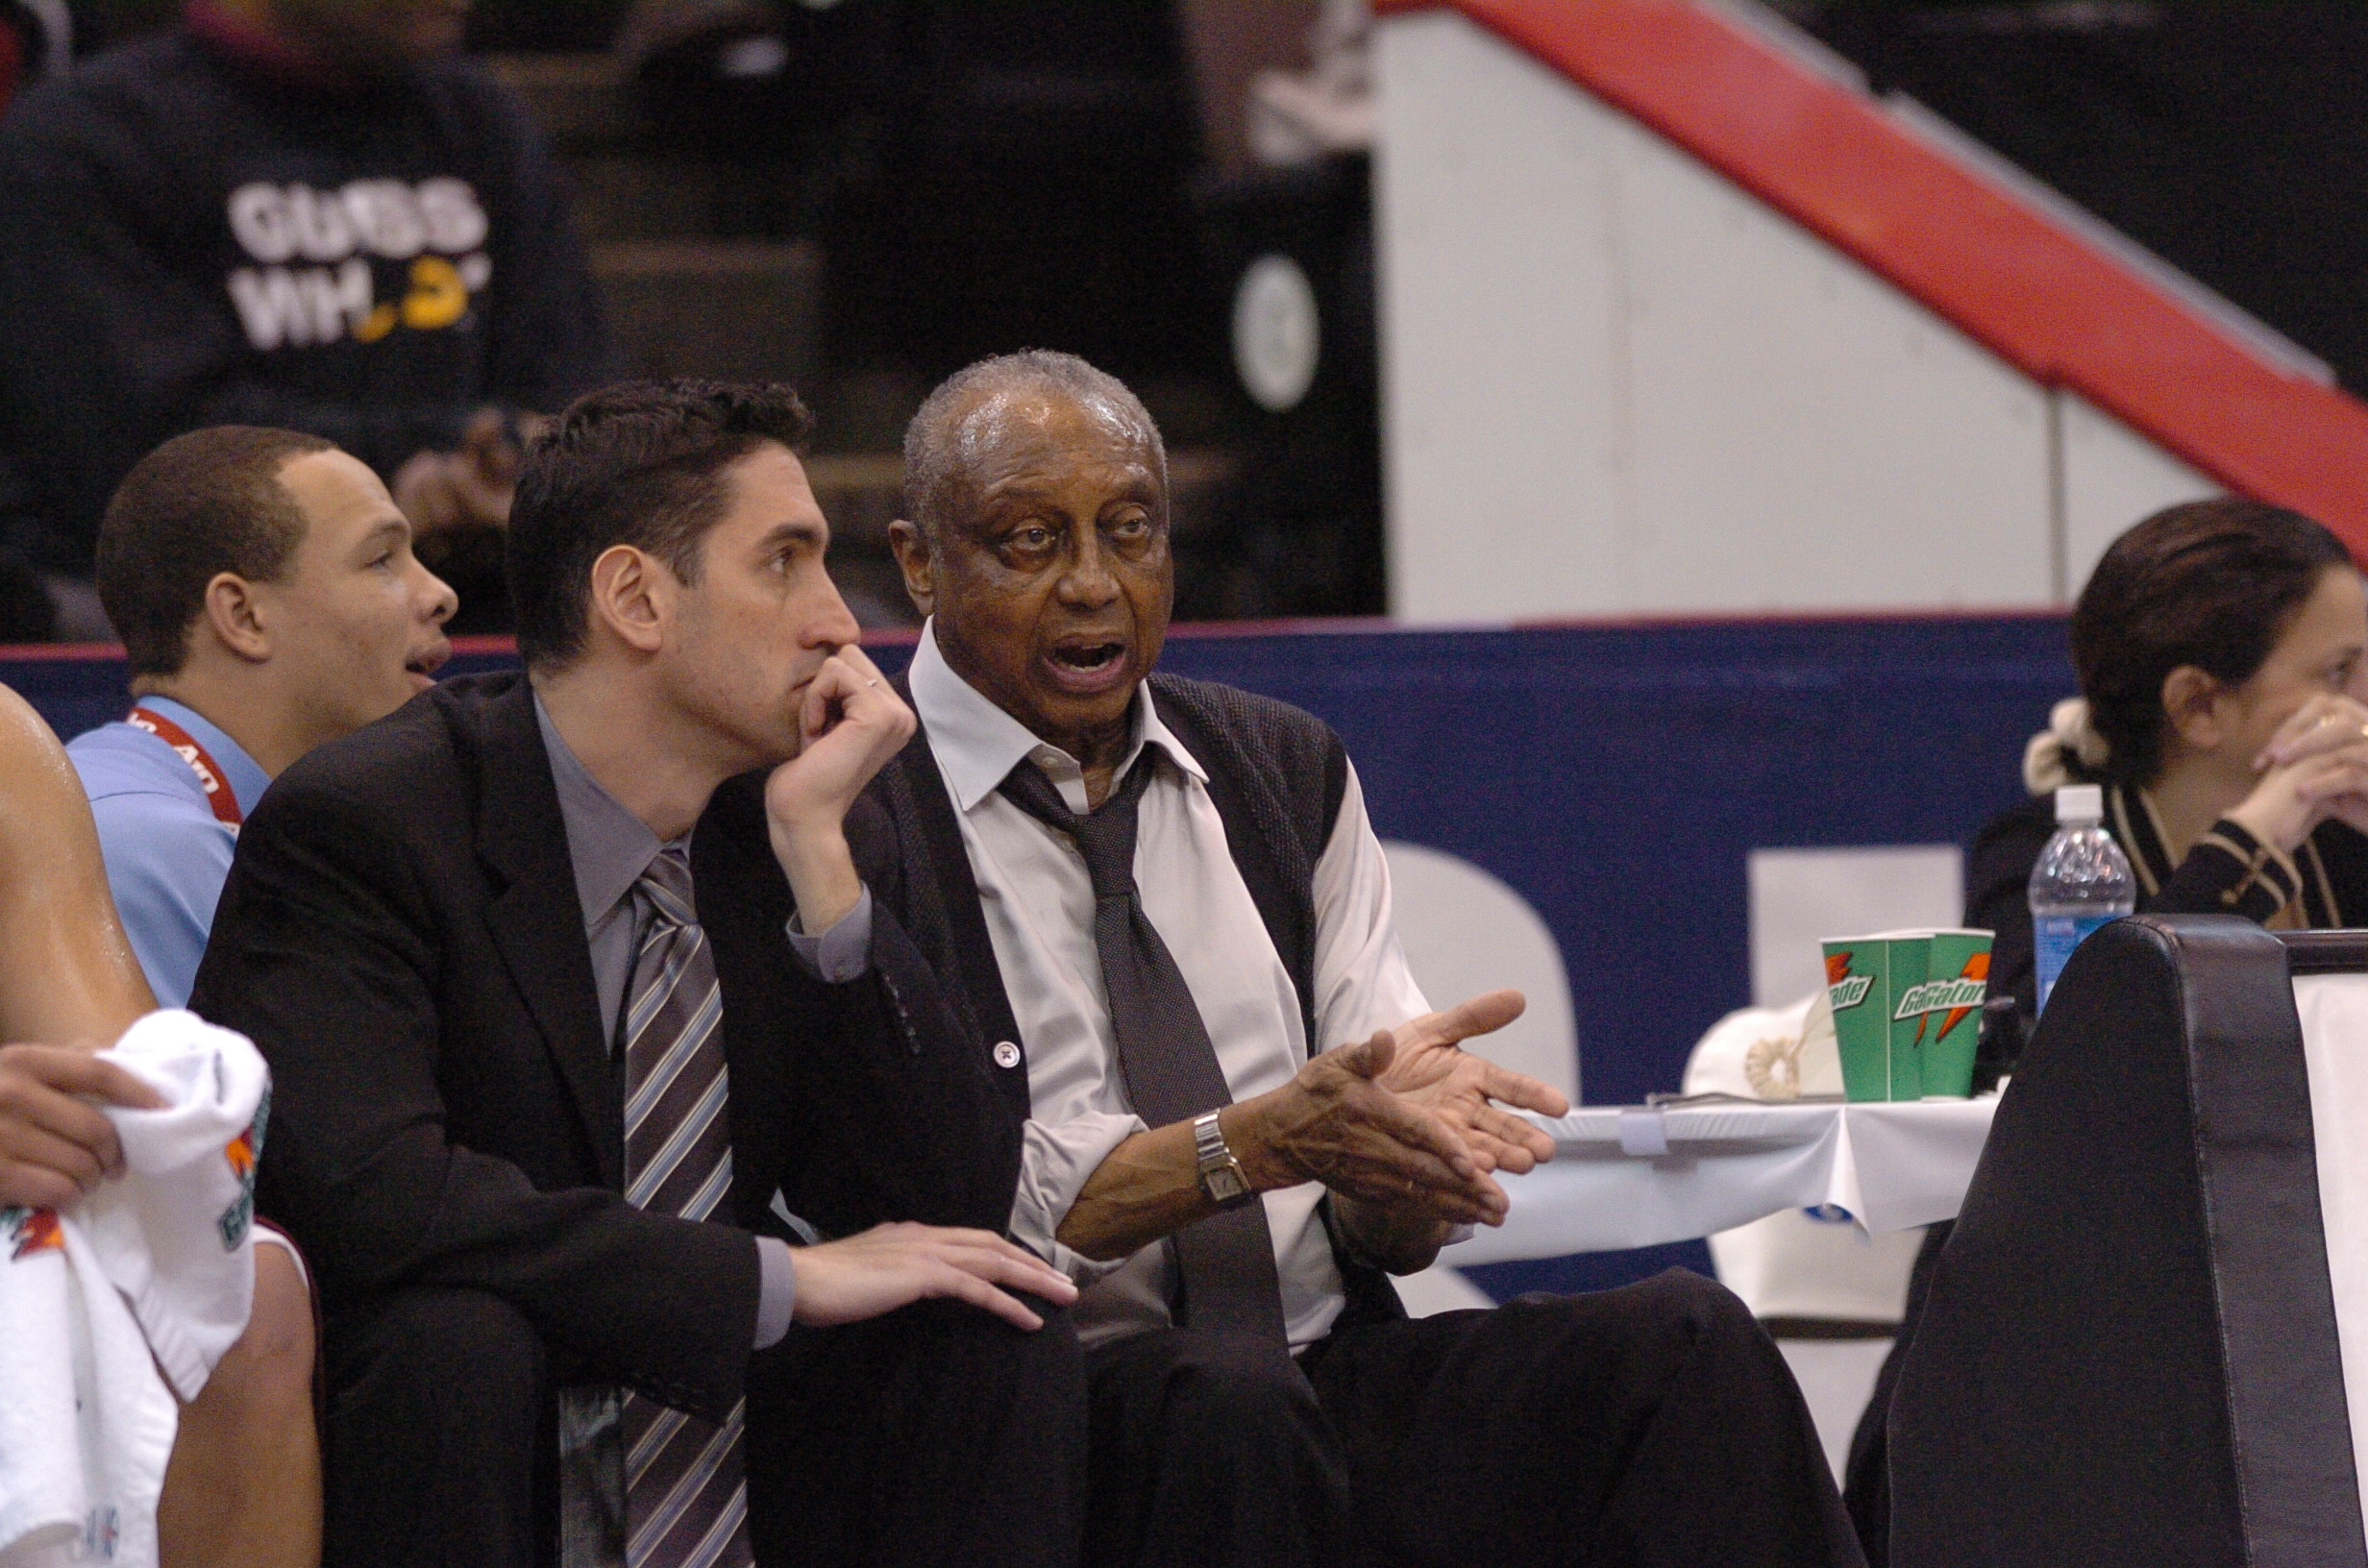 JOHN CHANEY, THE XAVIER GAME AND THE MOST INGENIOUS 31 POINT LOSS IN THE HISTORY OF COLLEGE BASKETBALL by Dan Leibovitz